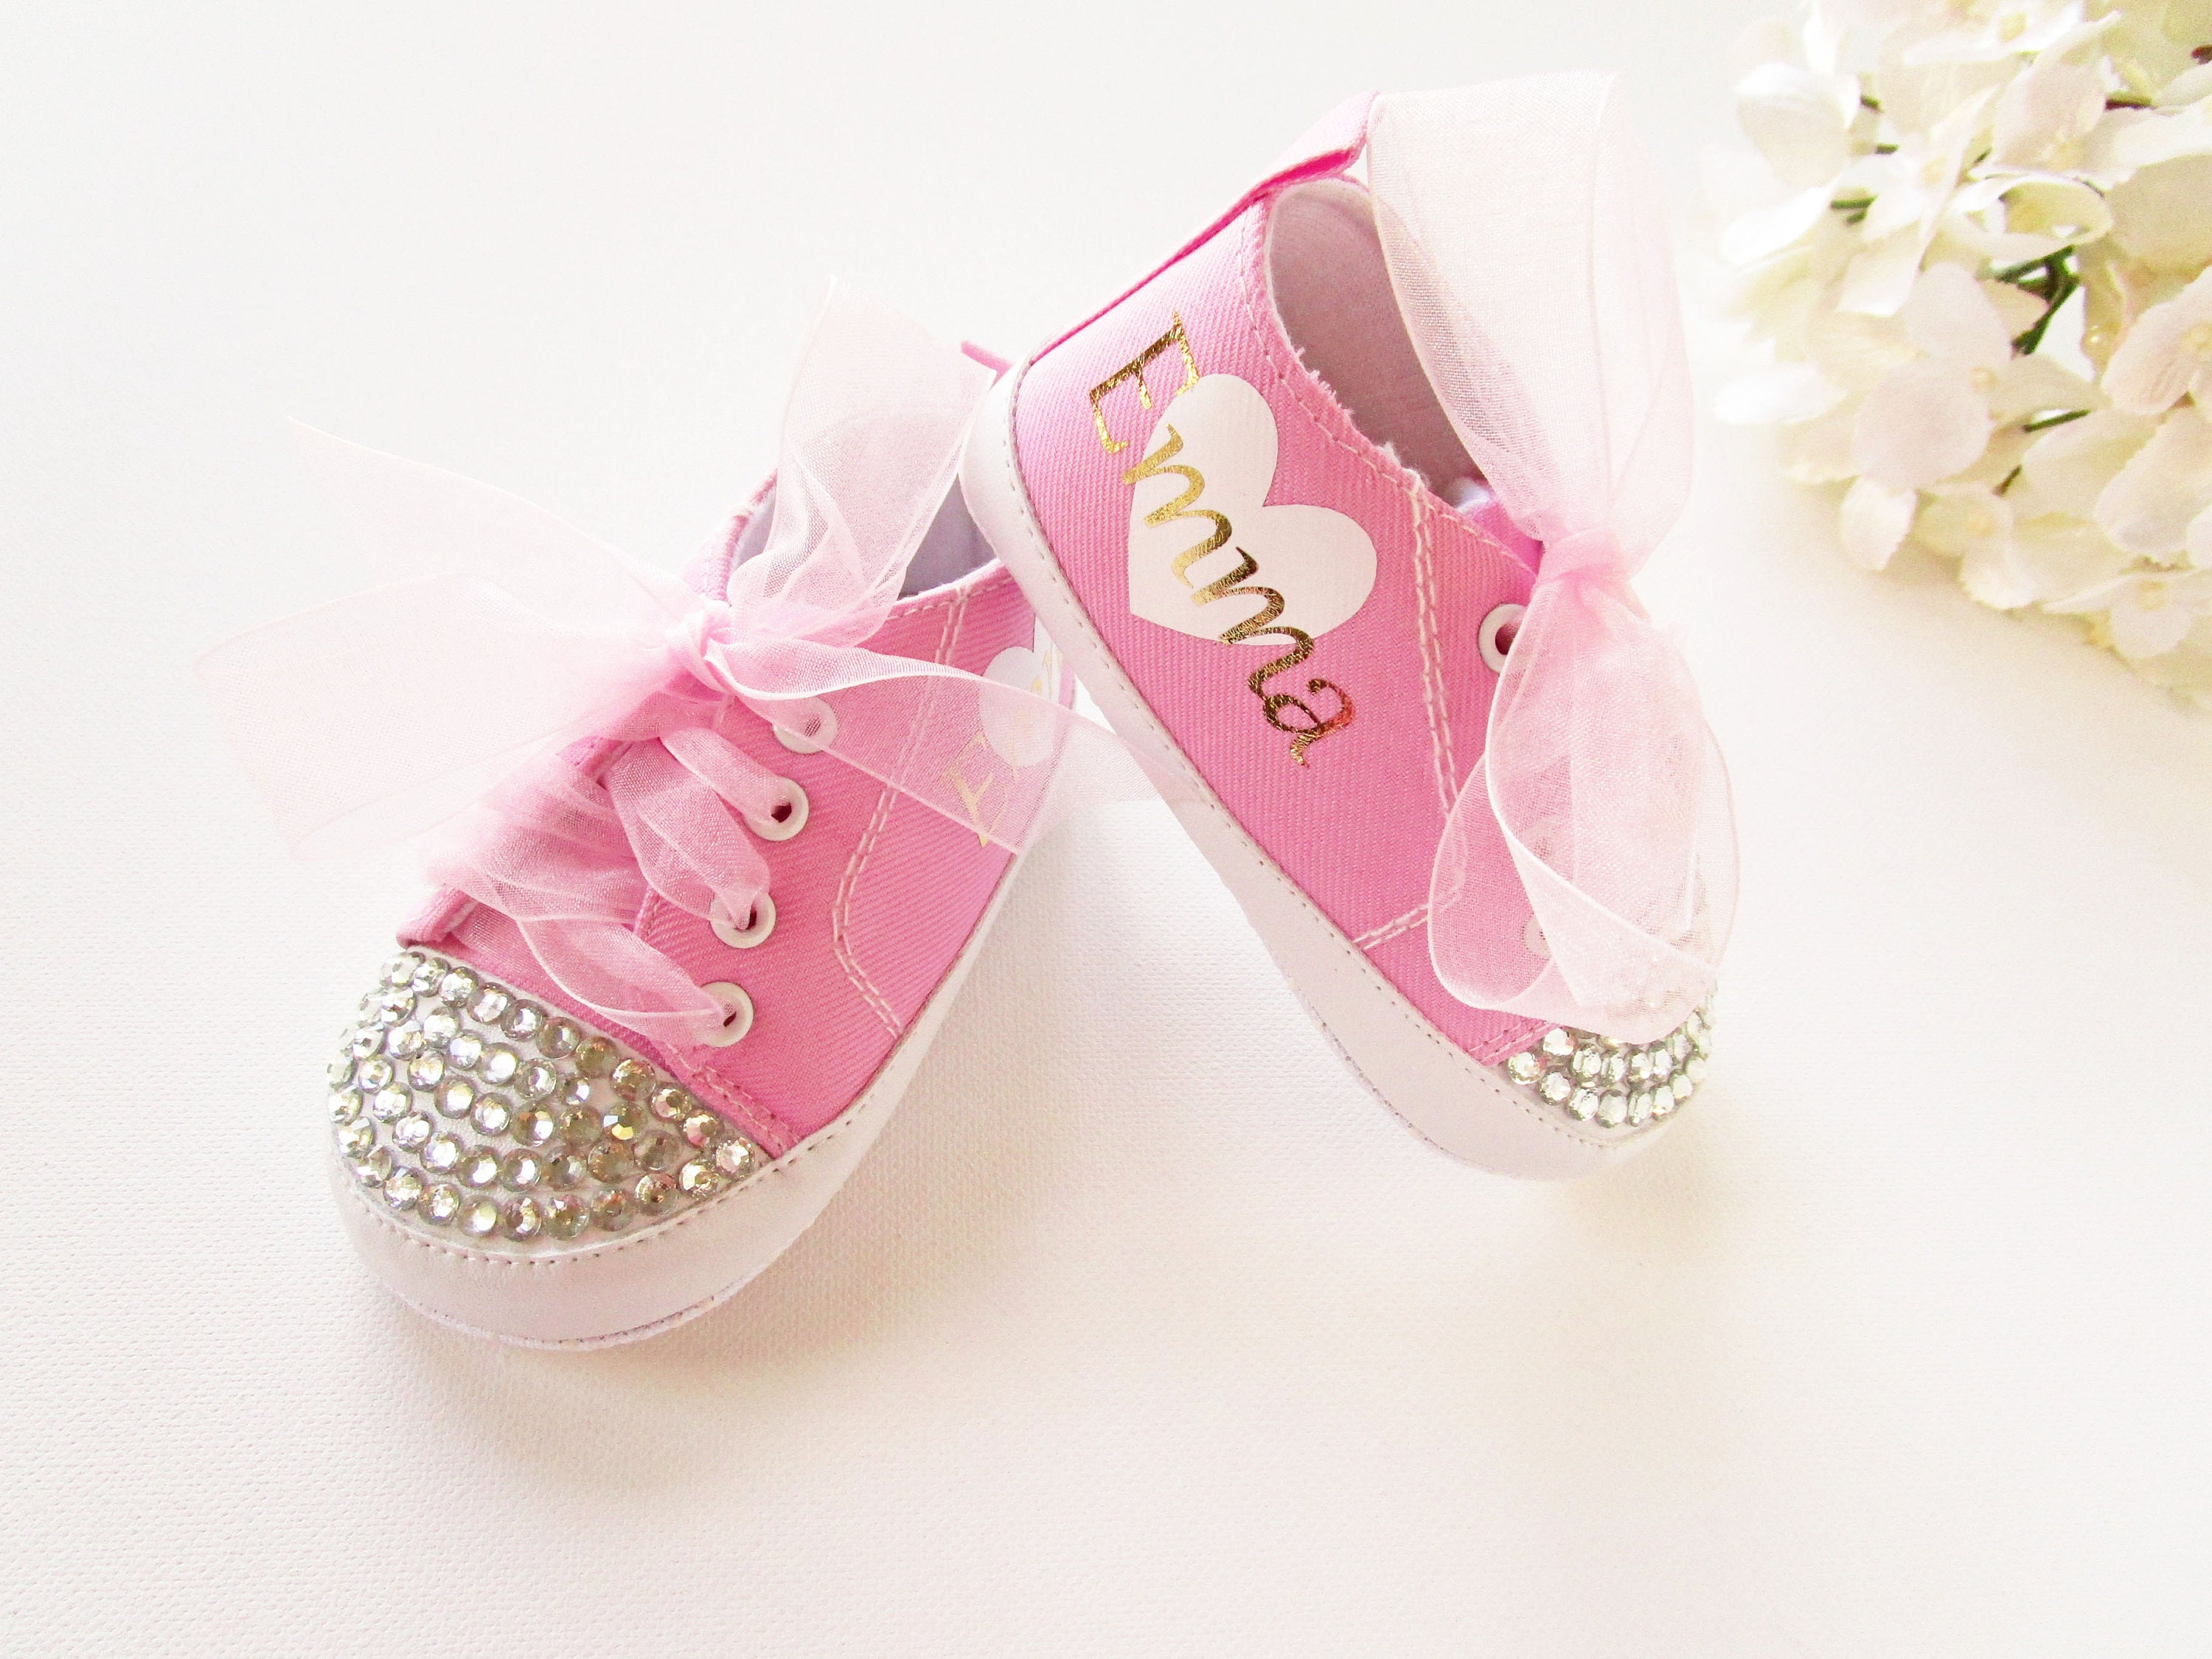 cce804ad87a2e BABY BLING SHOES / Personalized Baby Shoes / Baby Shoes for   Etsy